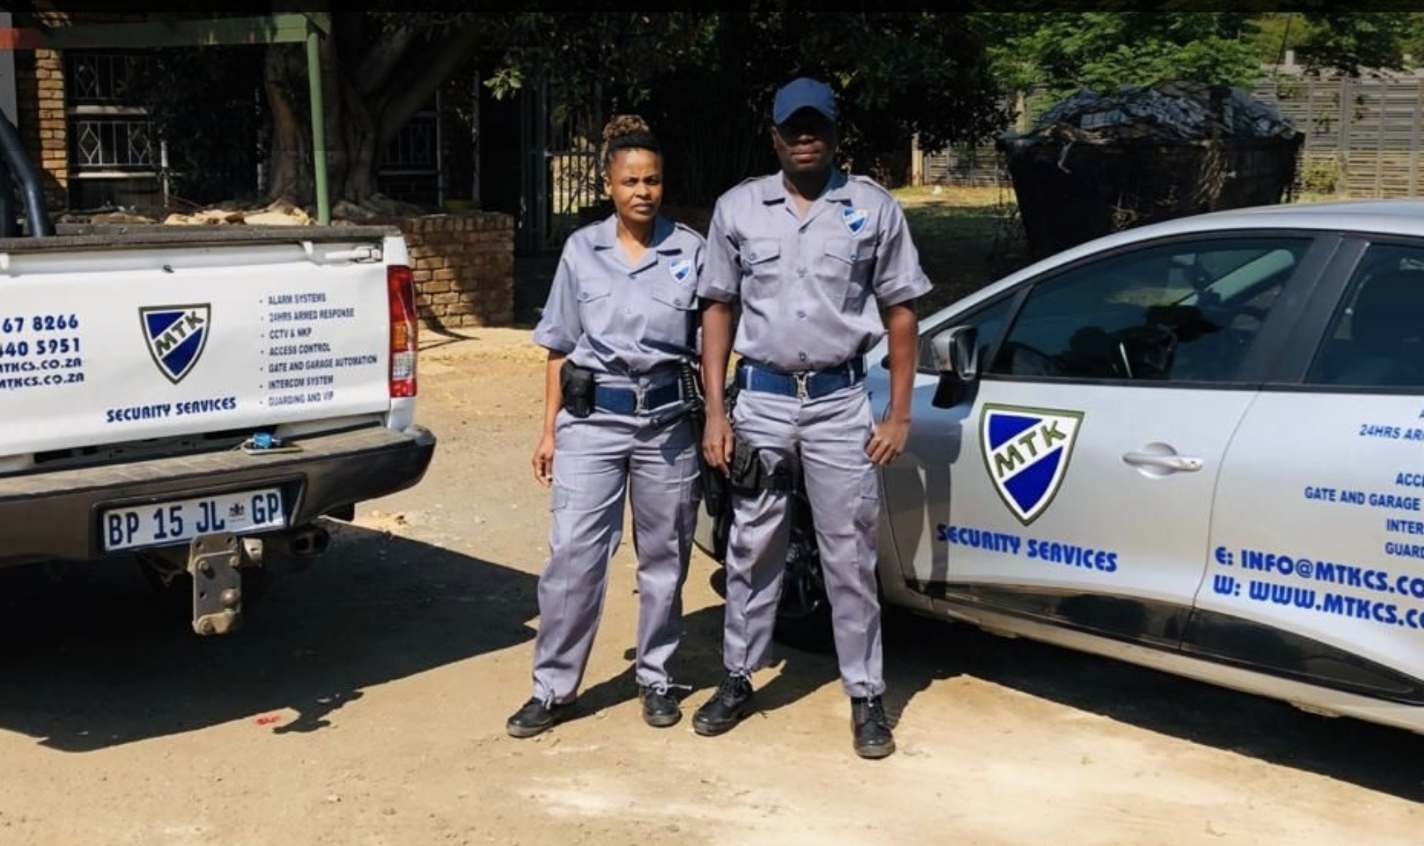 MTK SECURITY SERVICES,  ALARMS INSTALLATION, CCTV, 24HRS RESPONSE, VIP, SITECAMP